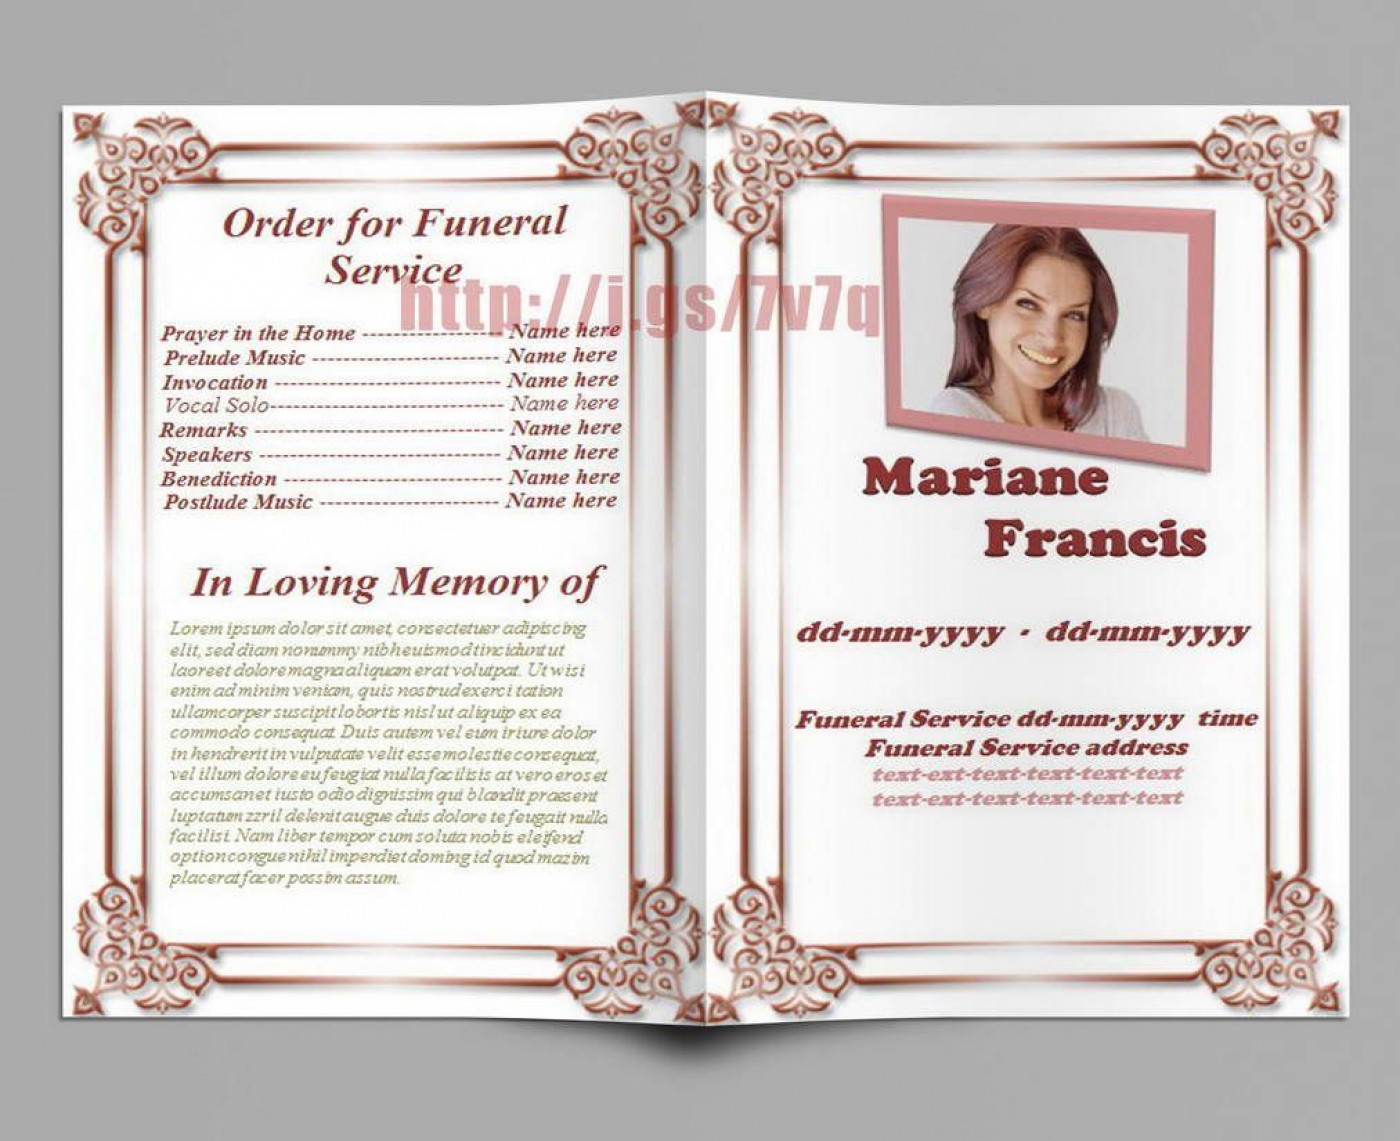 004 Awesome Funeral Program Template Free High Resolution  Blank Microsoft Word Layout Editable Uk1400